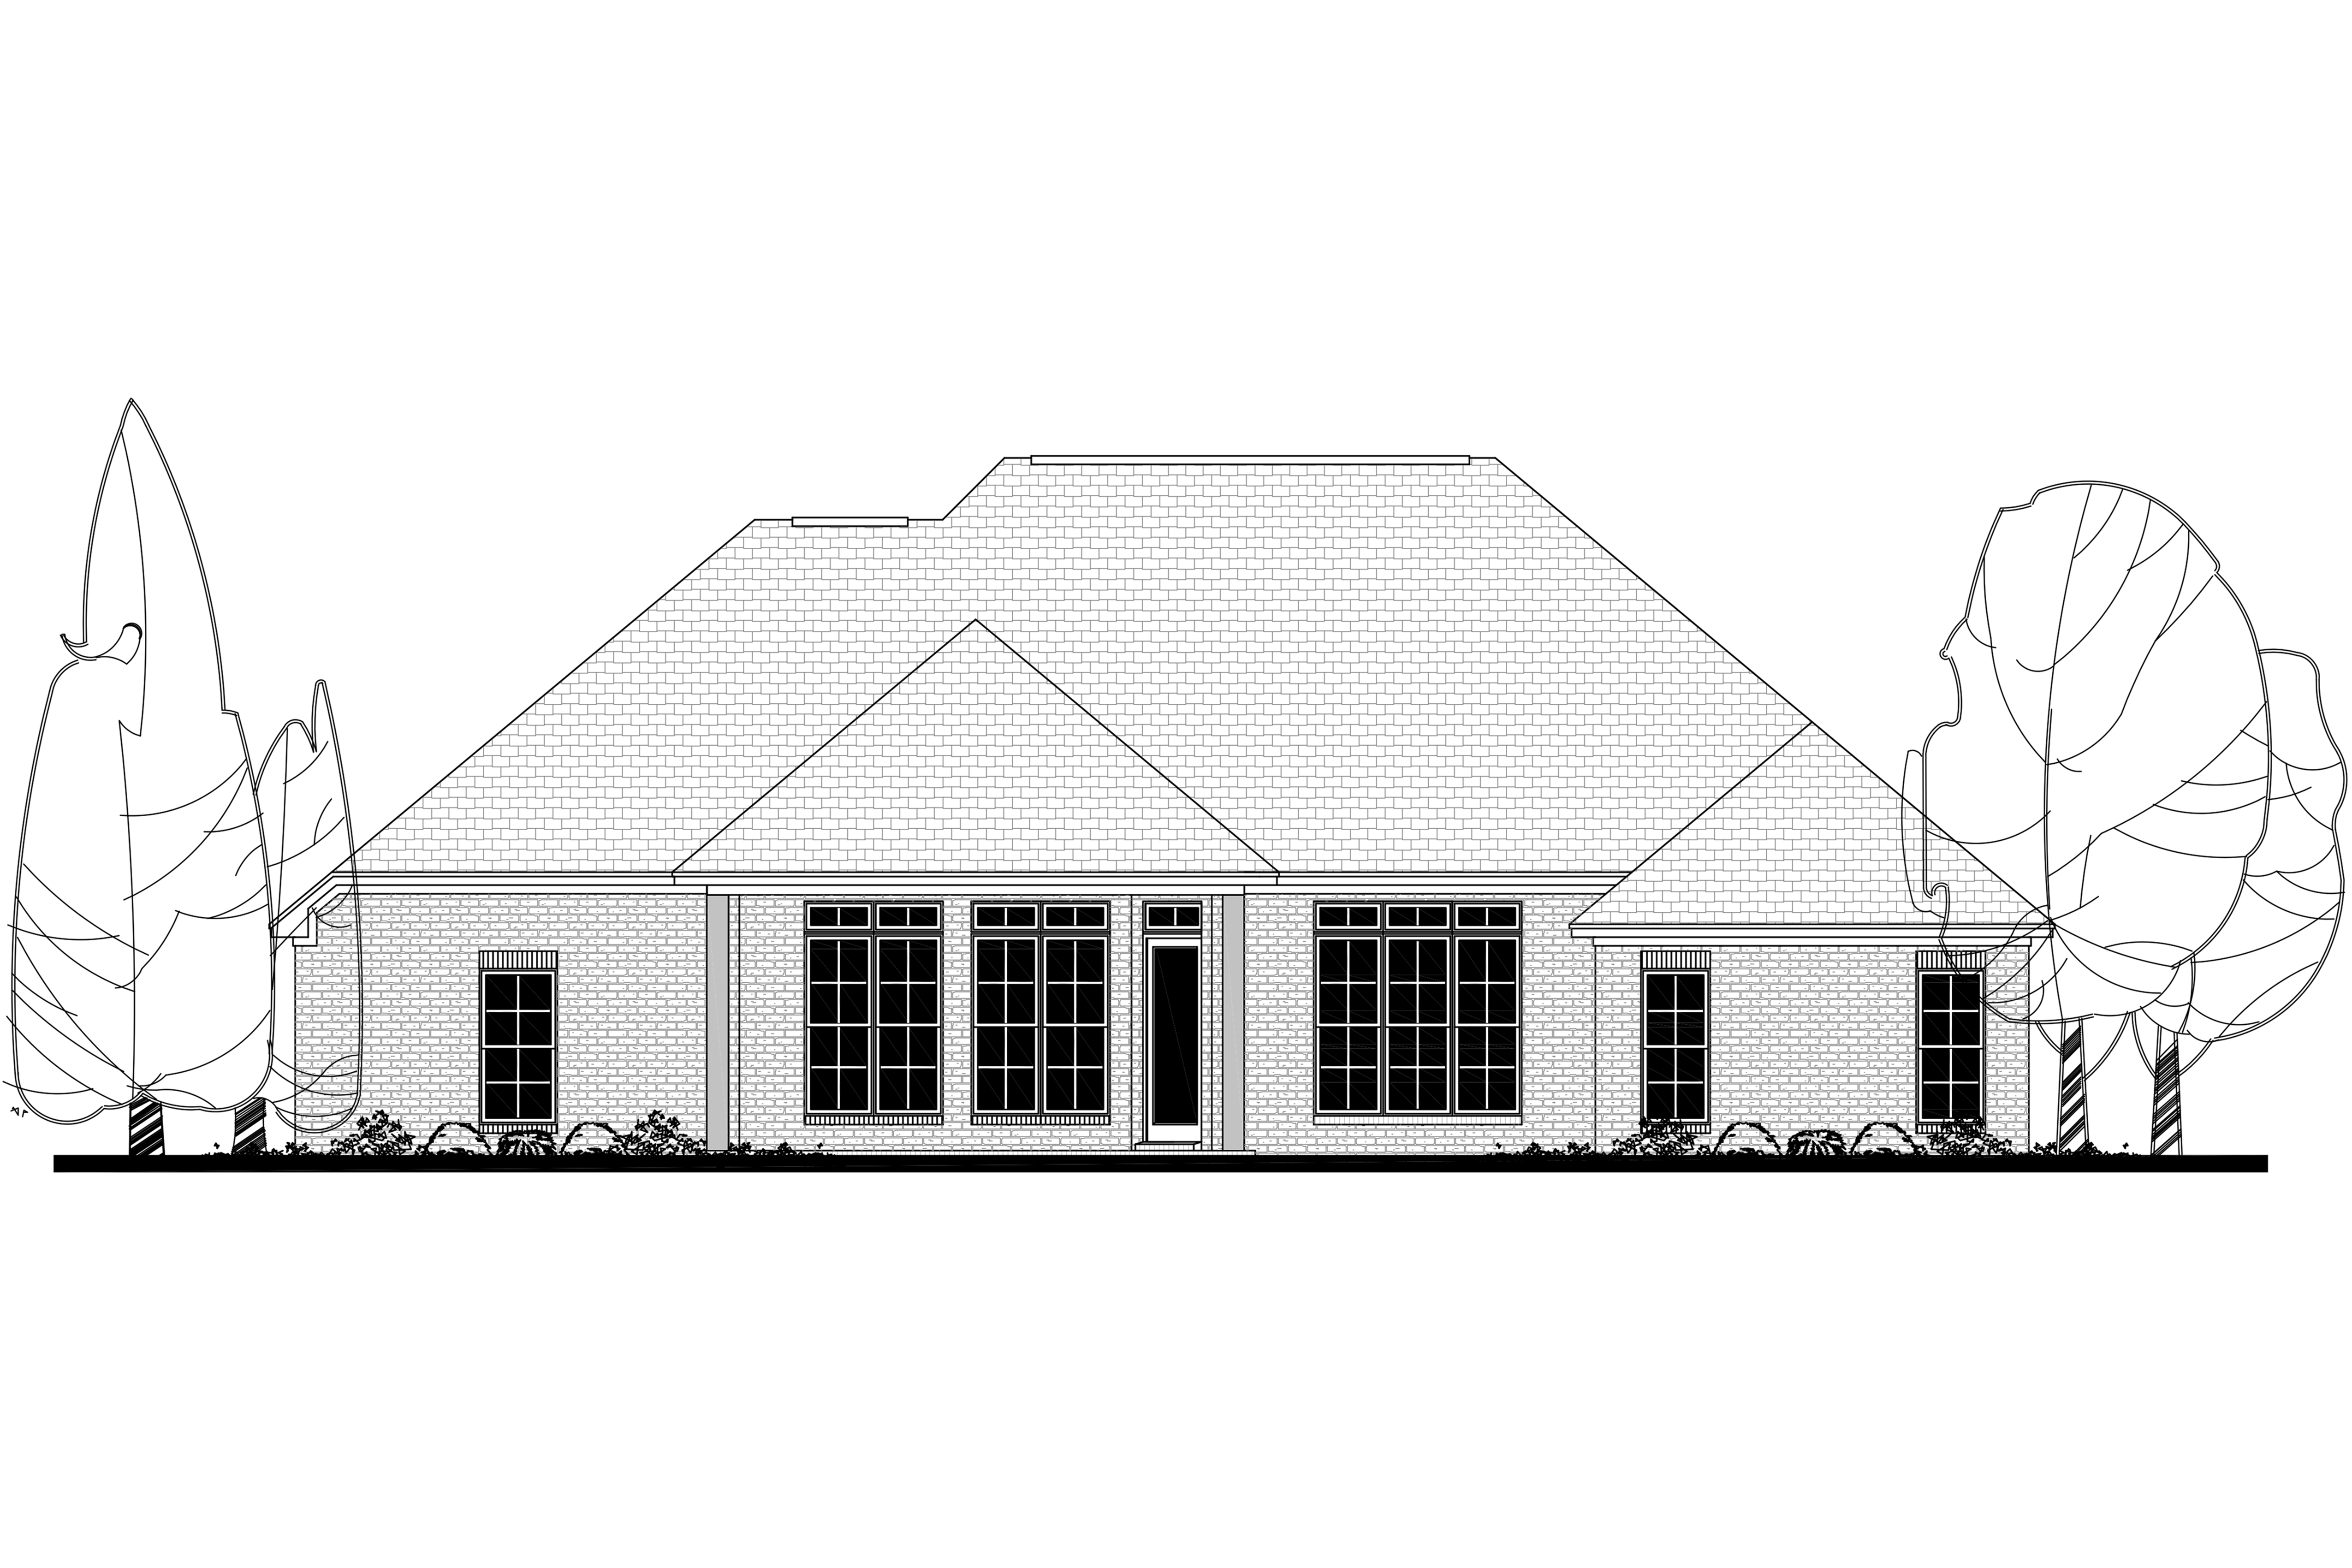 French House Plan #142-1142: 4 Bedrm, 2380 Sq Ft Home